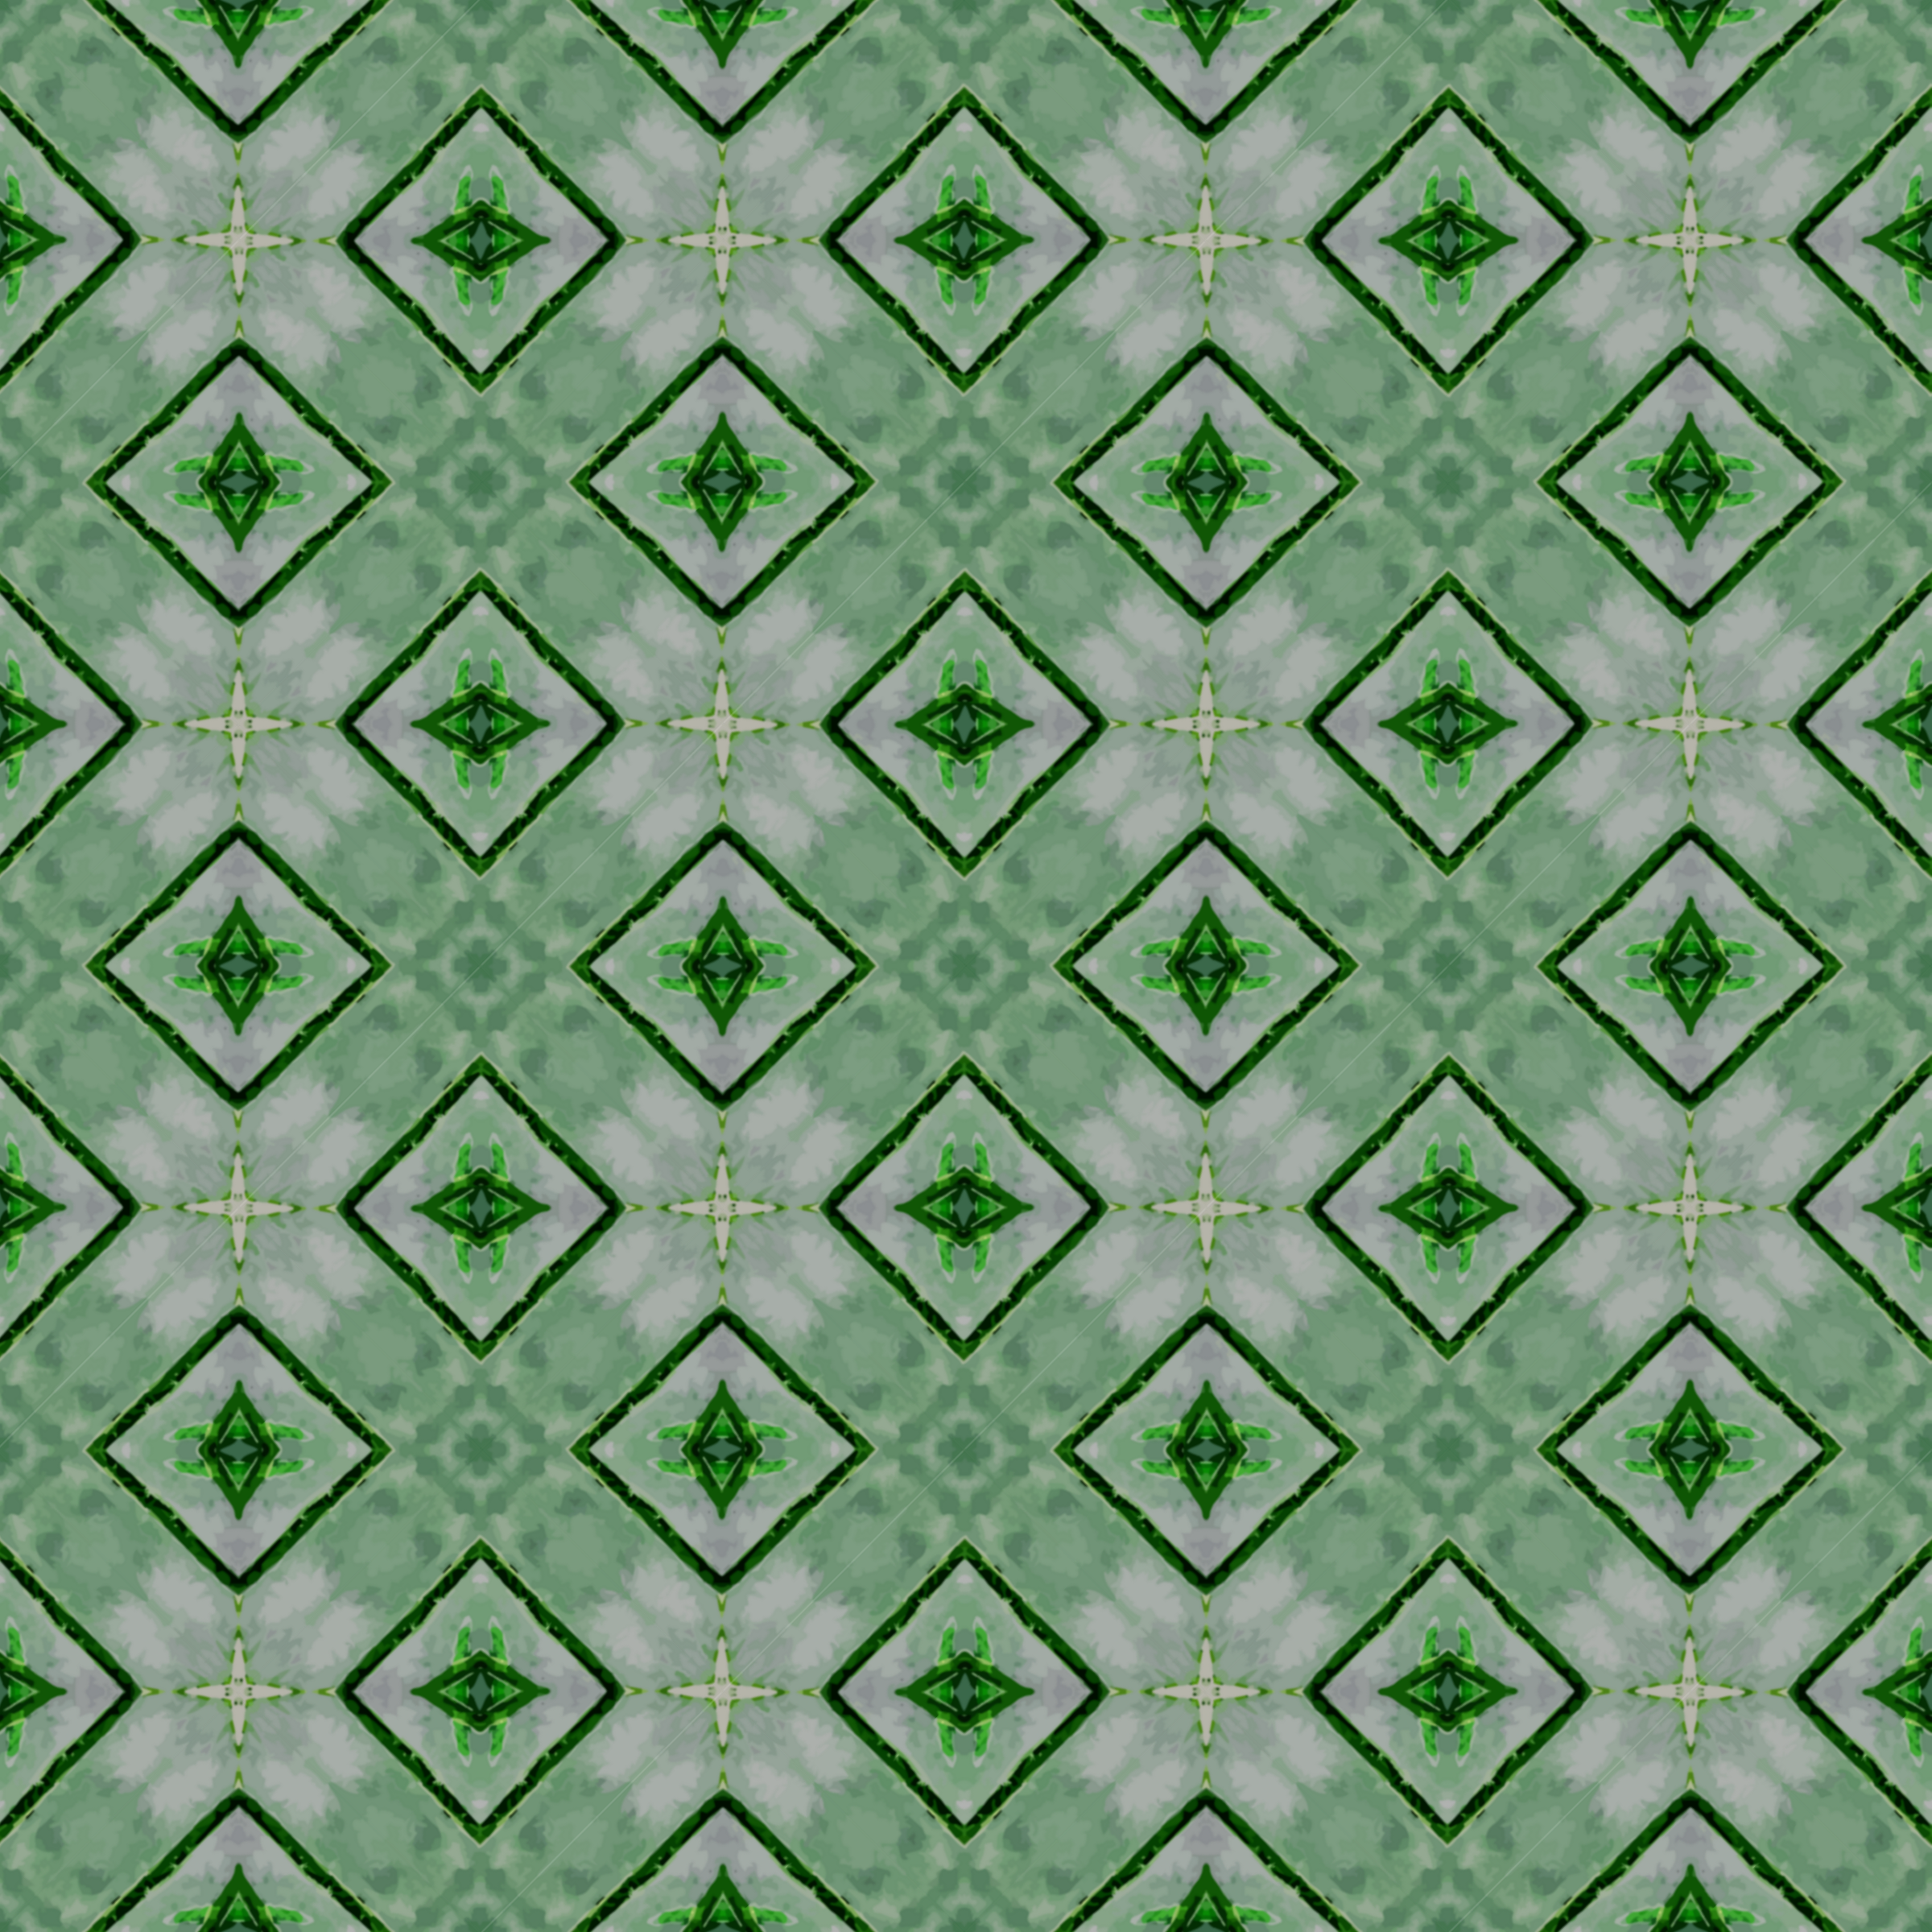 Background pattern 184 (colour 4) by Firkin